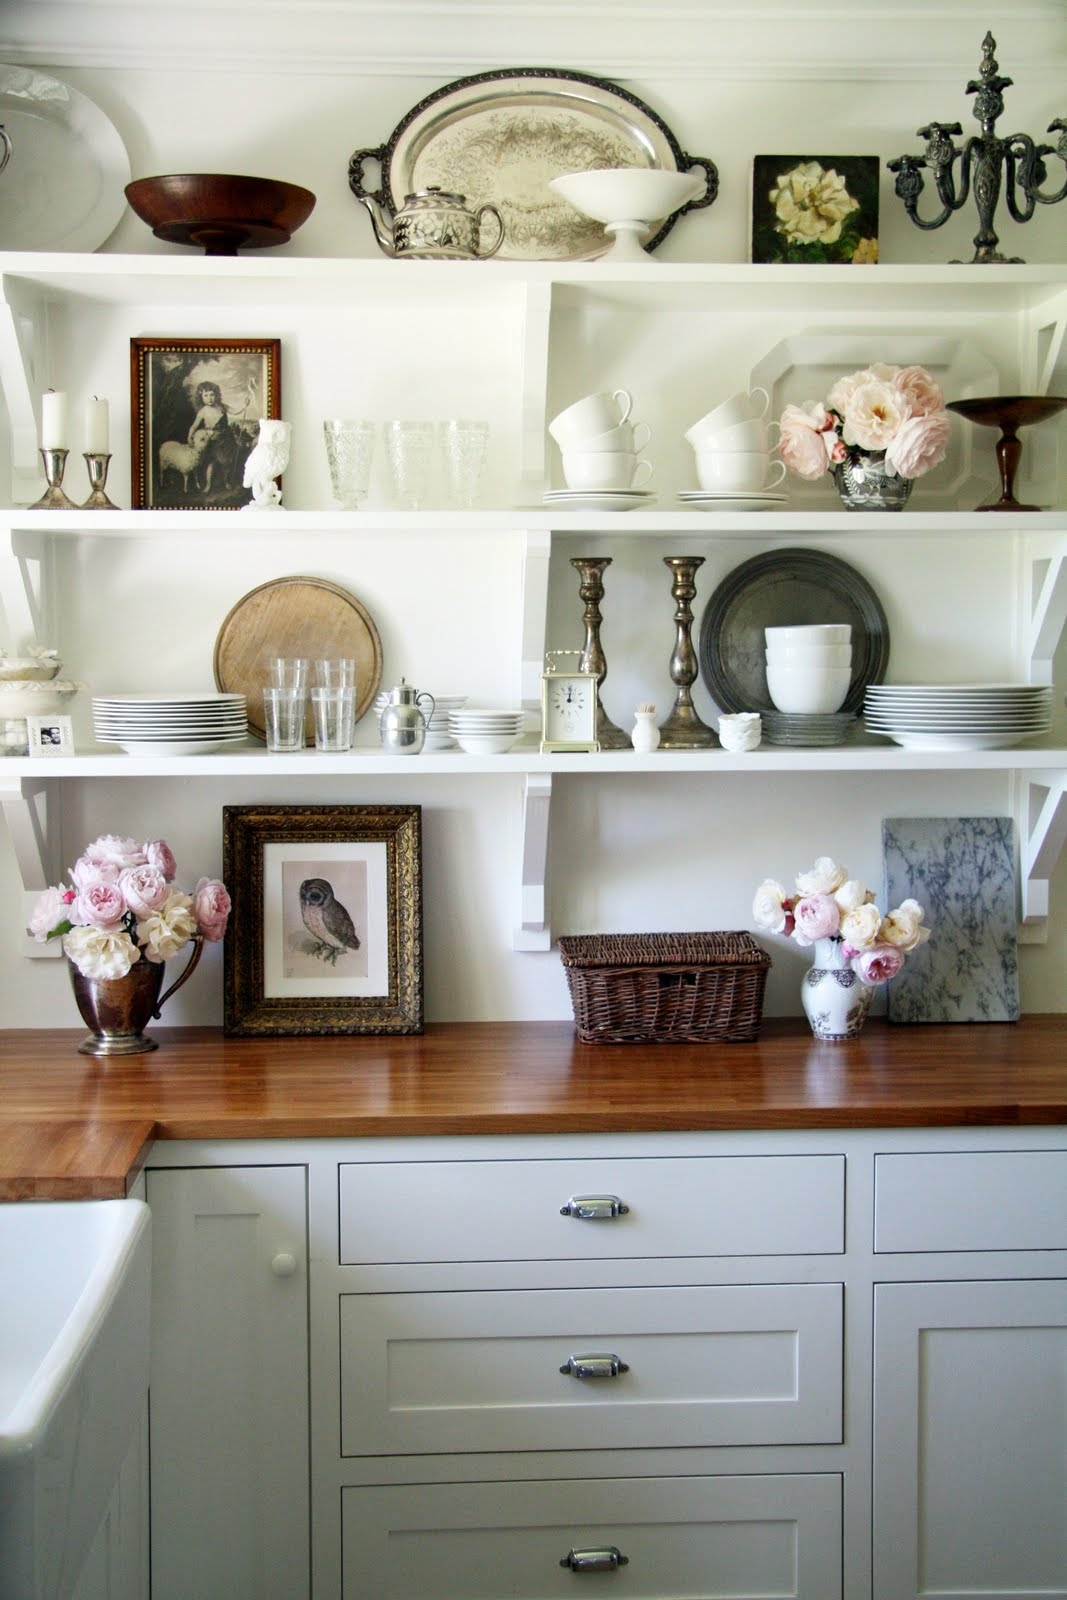 Decorating Ideas For Kitchen Shelves